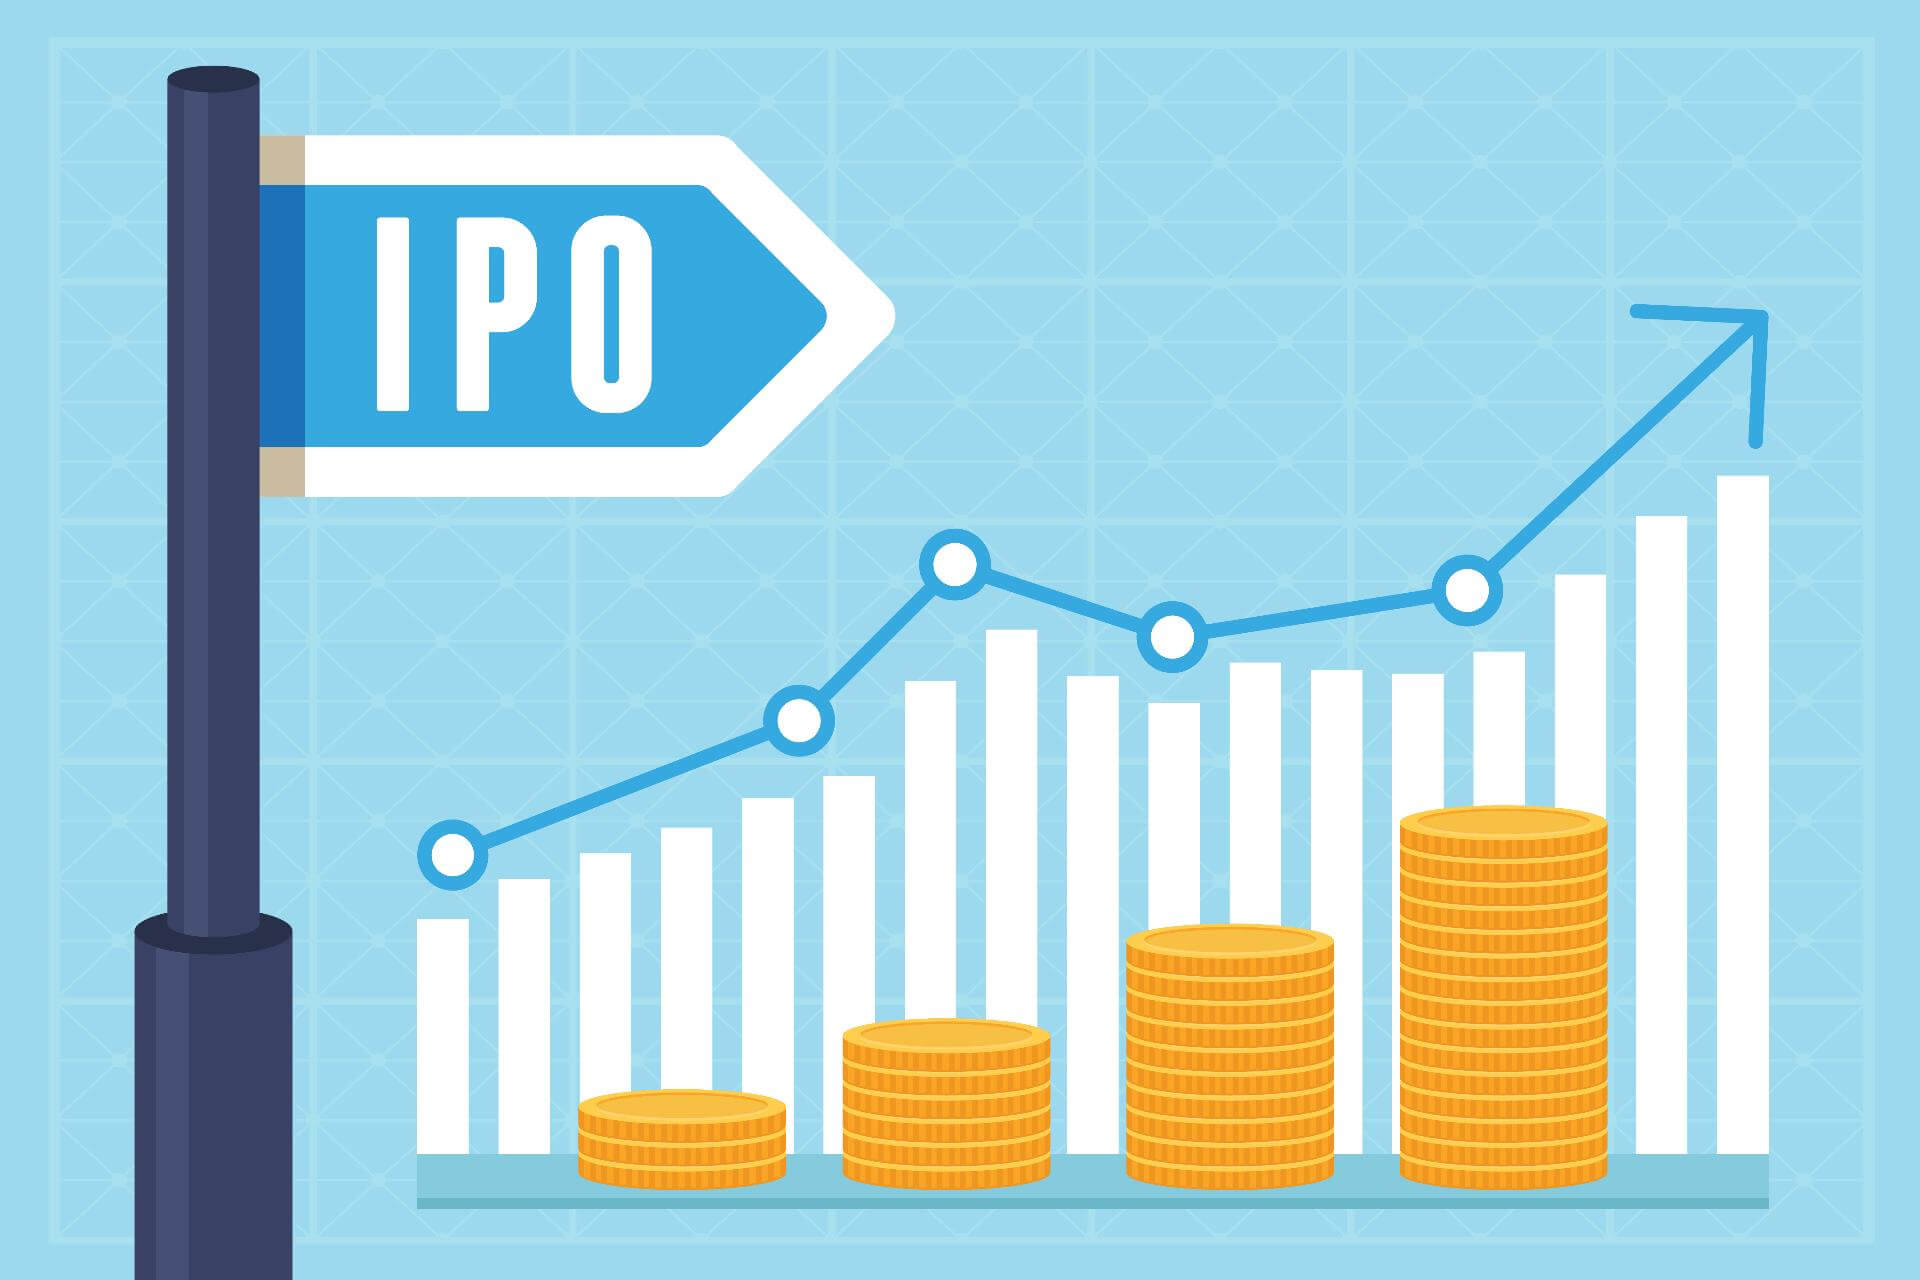 Smaller Companies Choose IPOs to Fund Growth